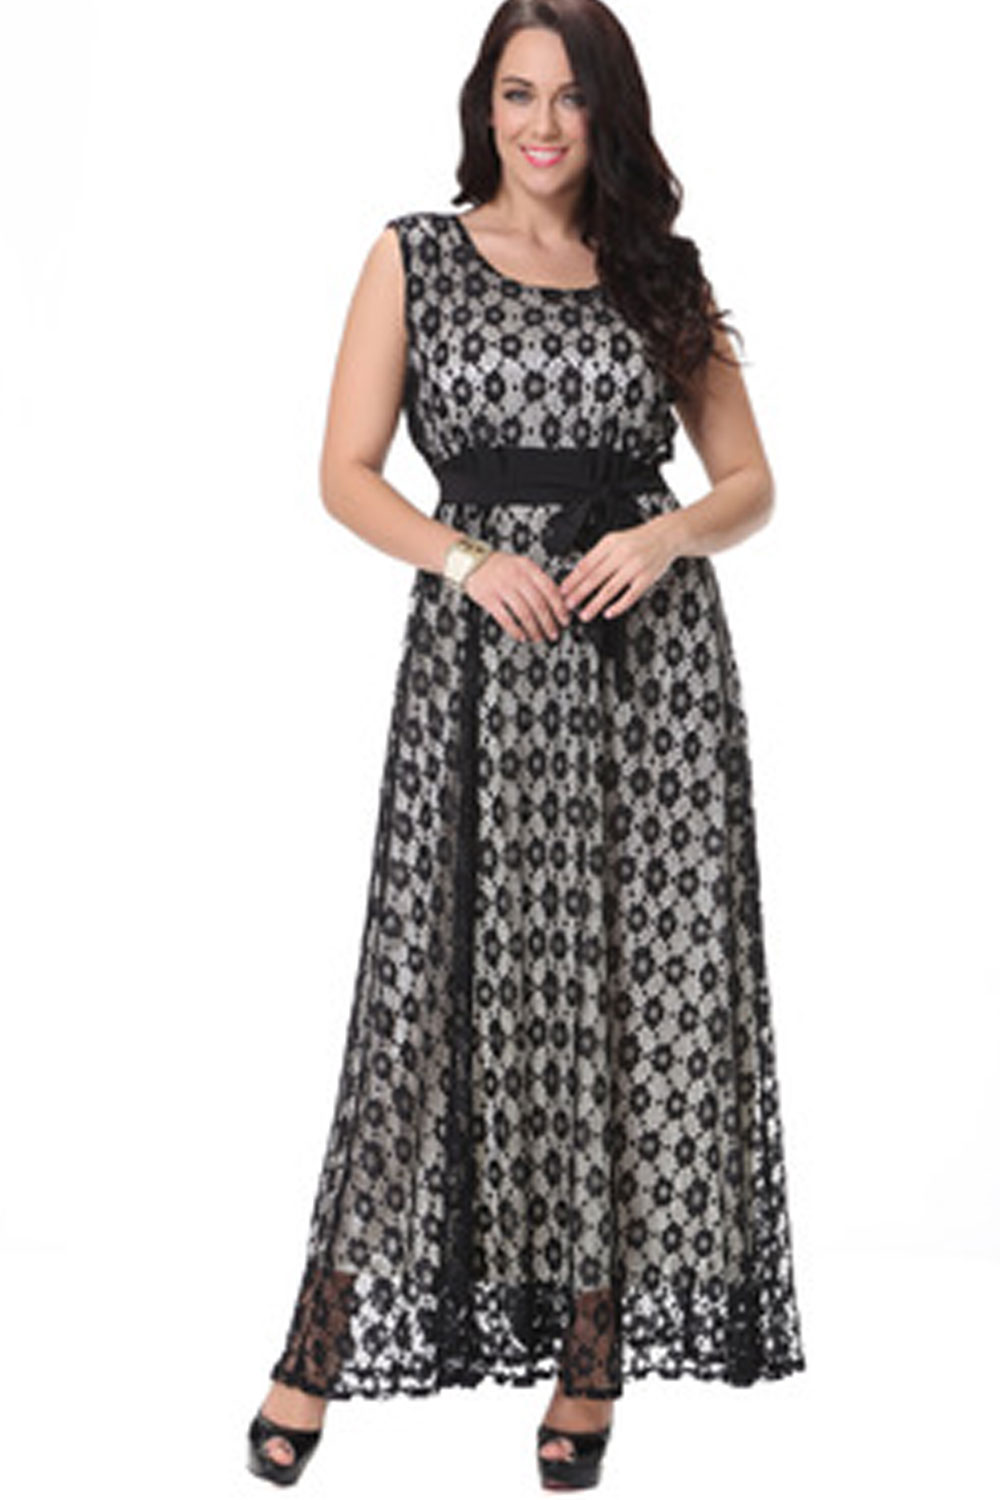 UNOMATCH WOMEN LACE DESIGNED PLUS SIZE LONG PARTY SPECIAL OCCASION ...